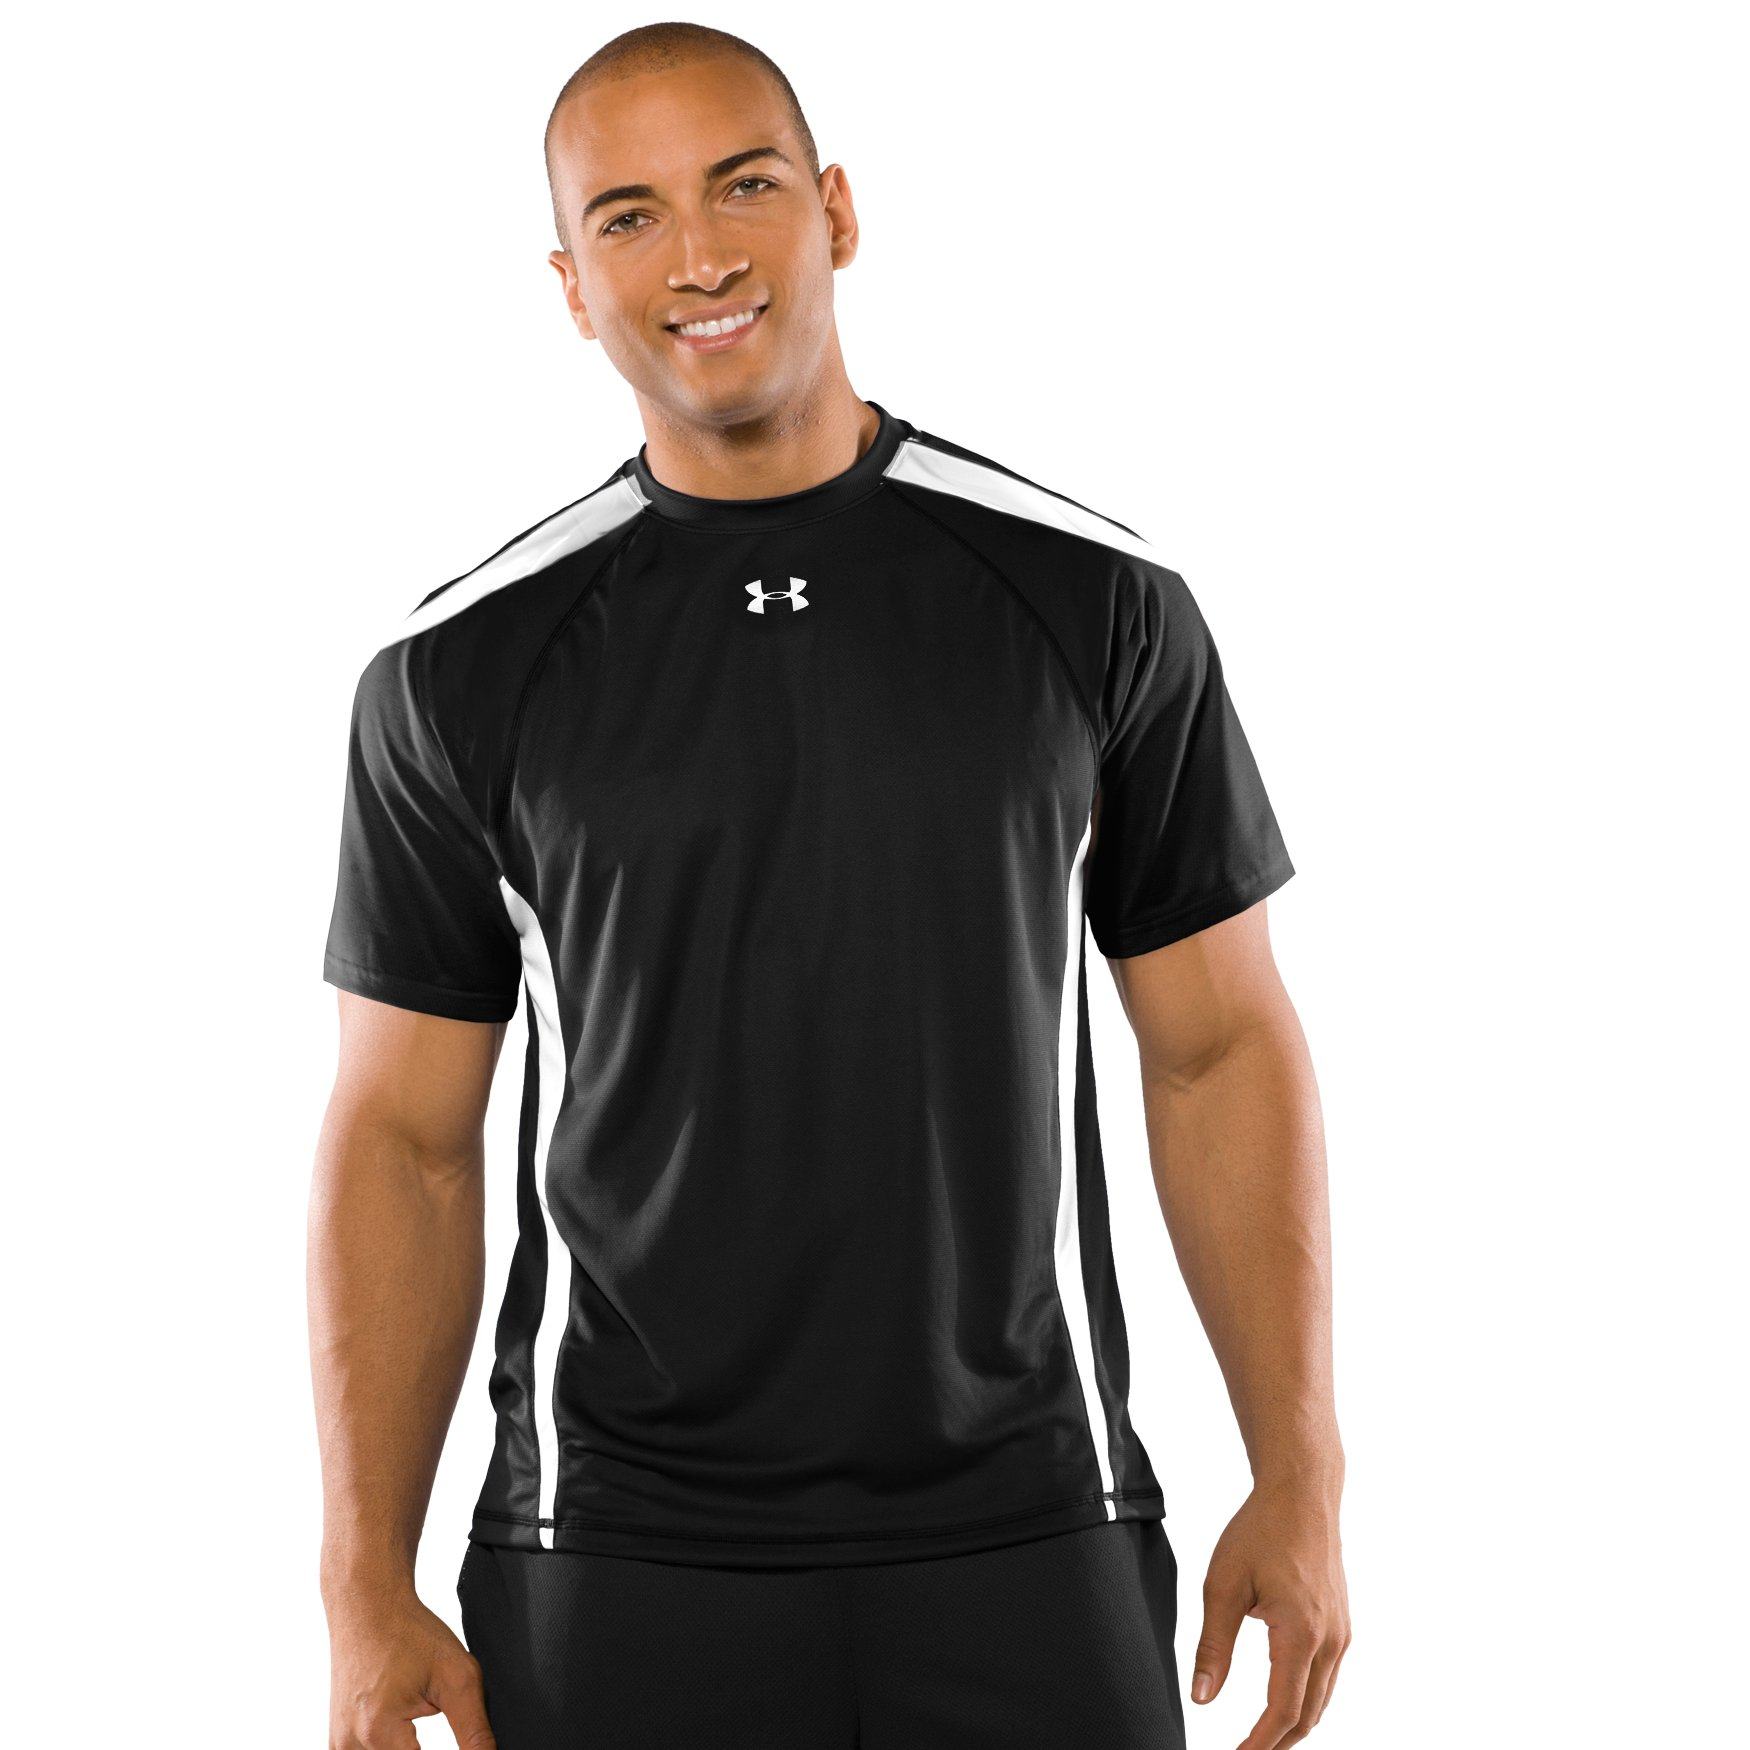 Under Armour Men's UA Zone VI T-Shirt